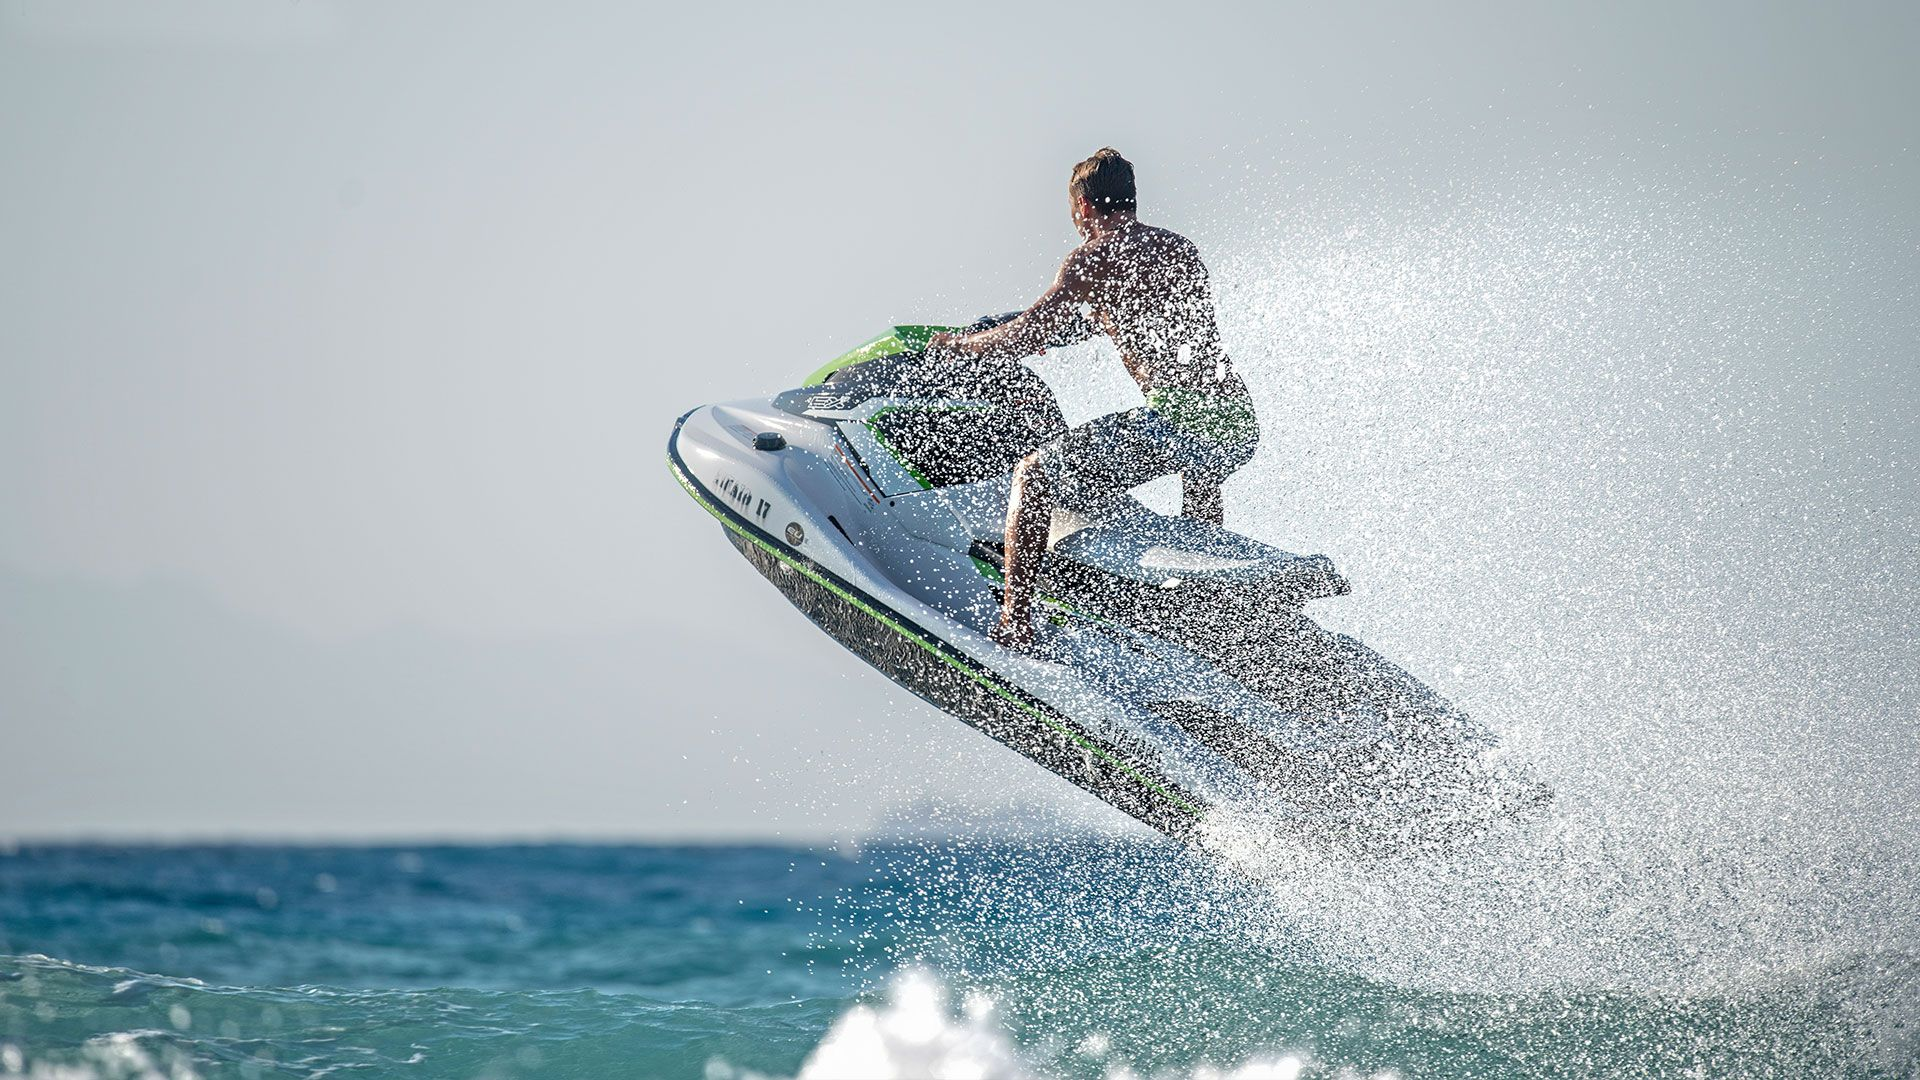 jump-wave-jet-ski-windsurfersworld-windsurfing-ixia